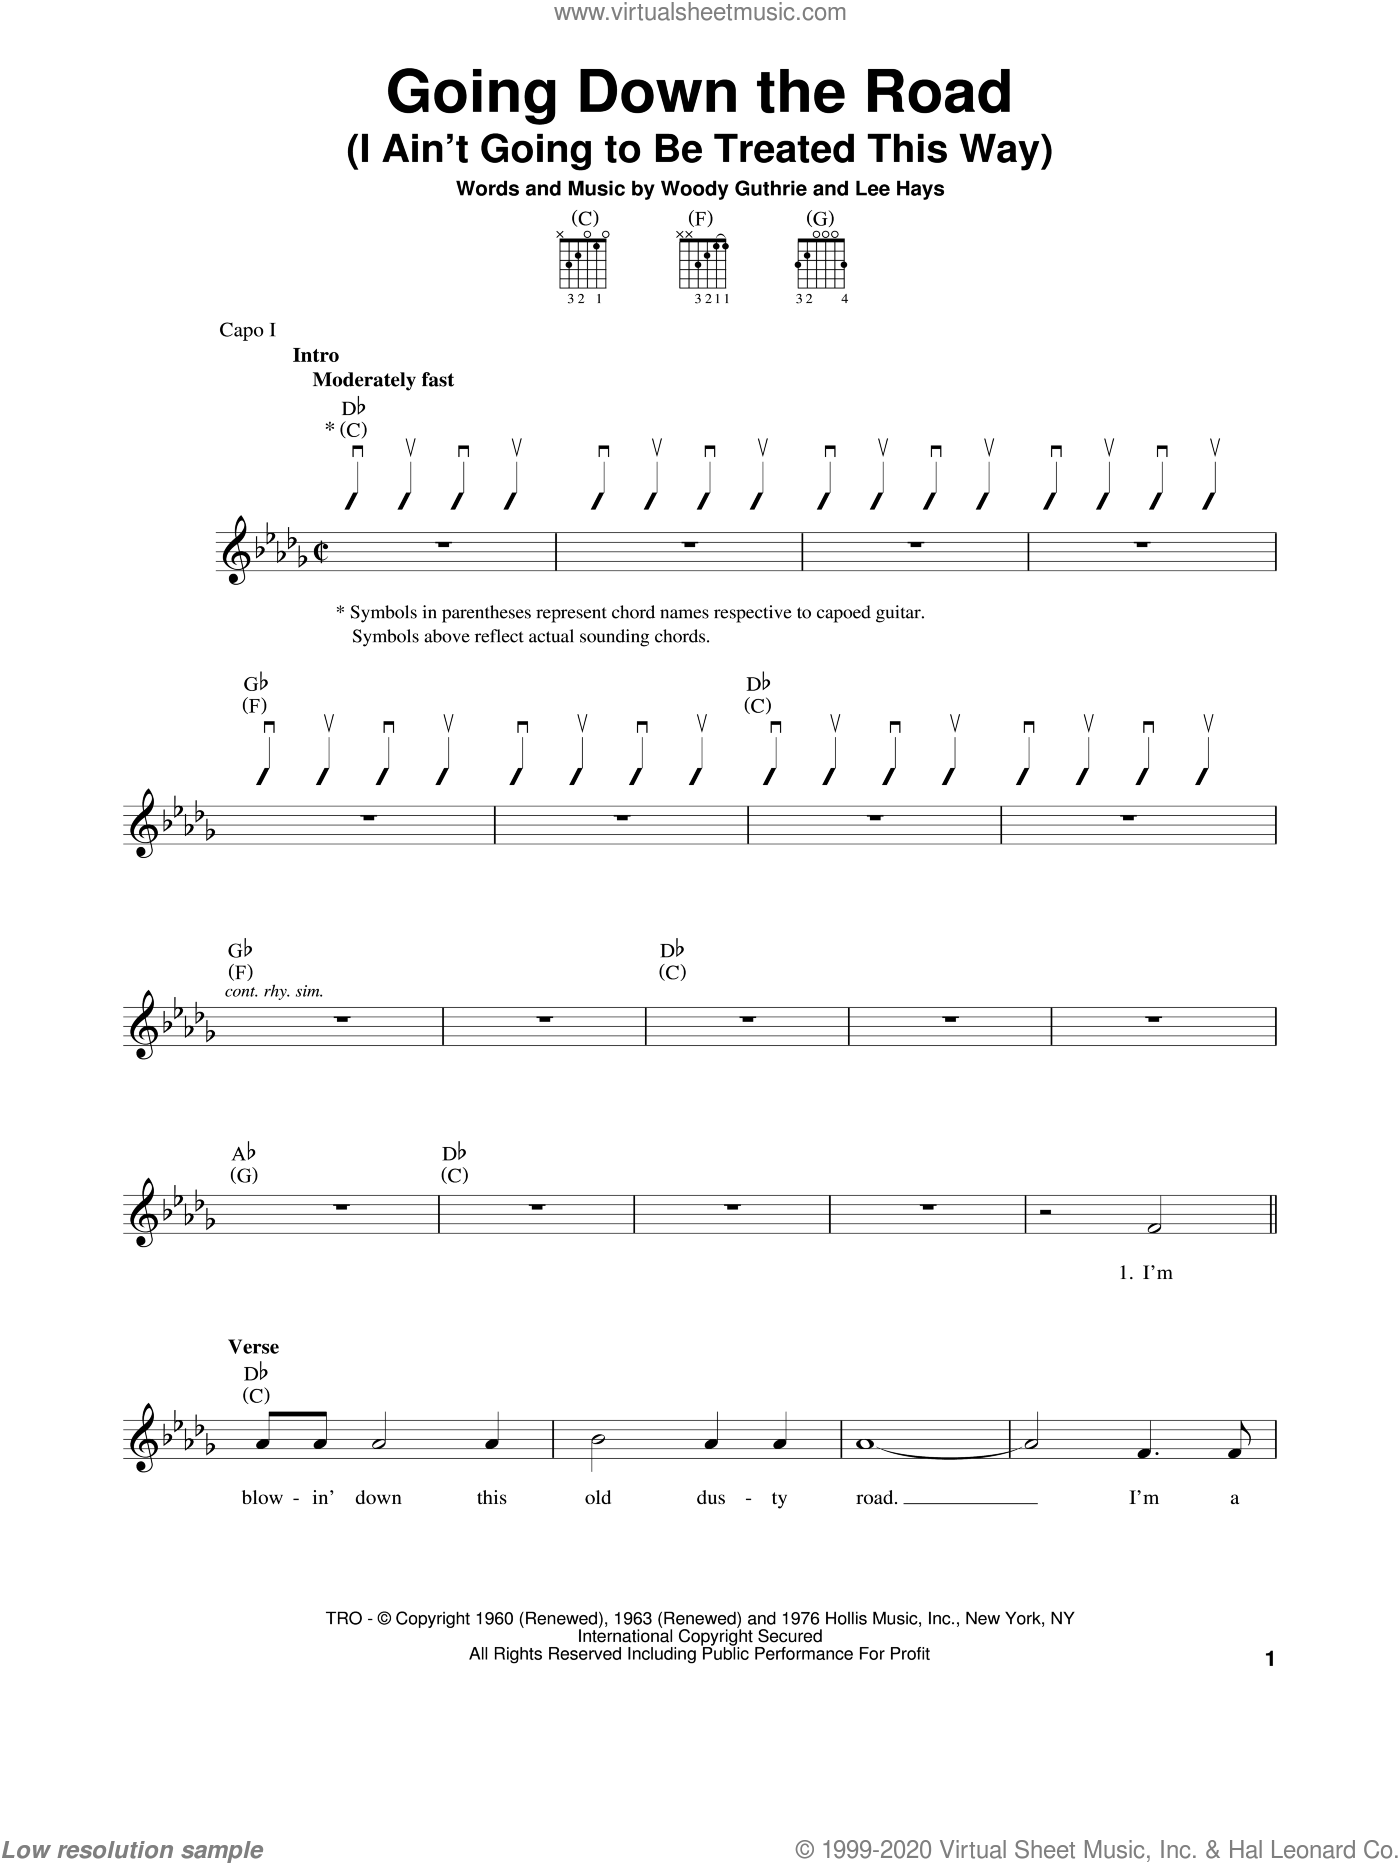 Going Down The Road (I Ain't Going To Be Treated This Way) sheet music for guitar solo (chords) by Lee Hays